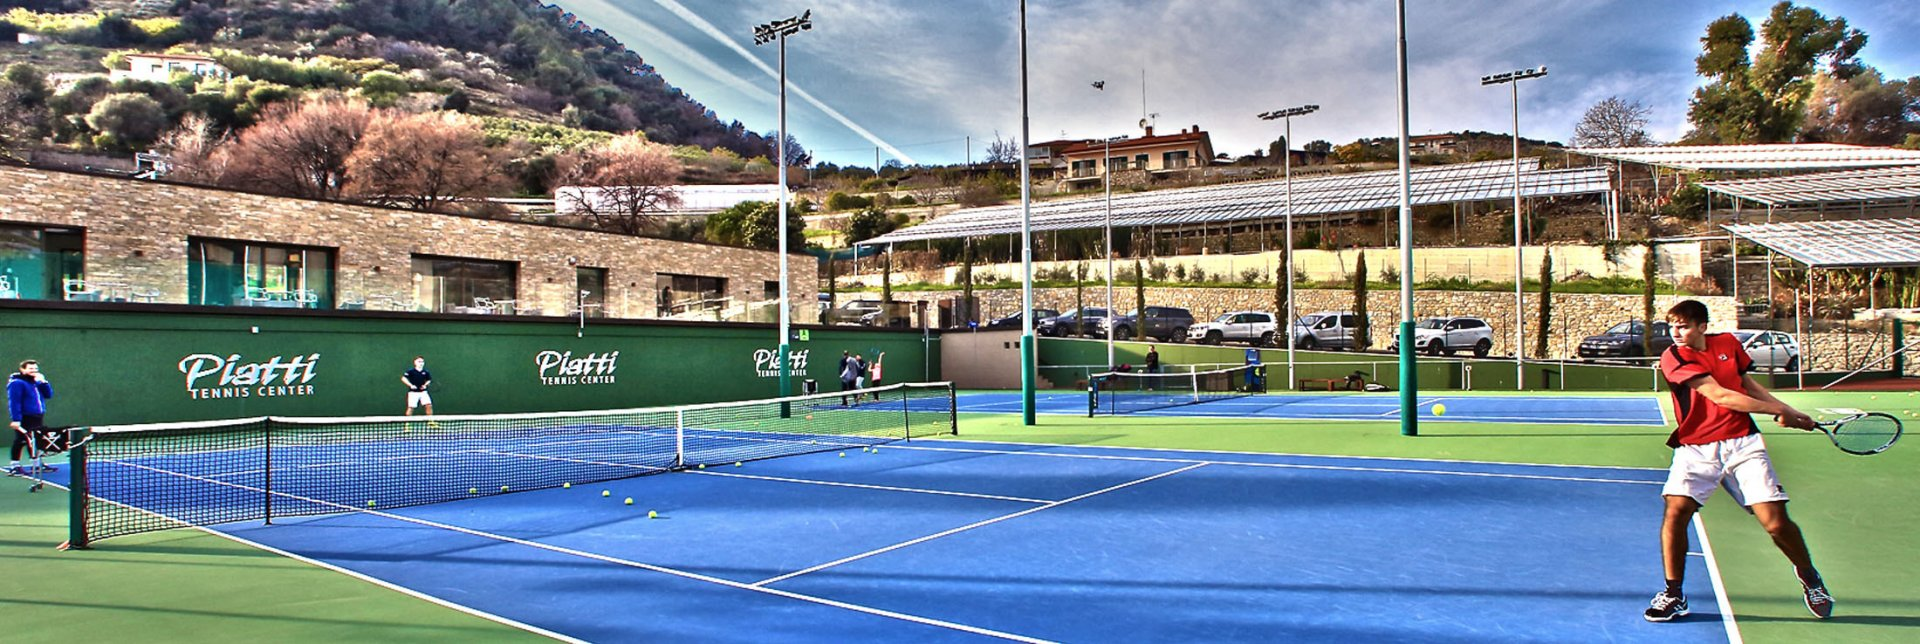 Piatti Tennis Center